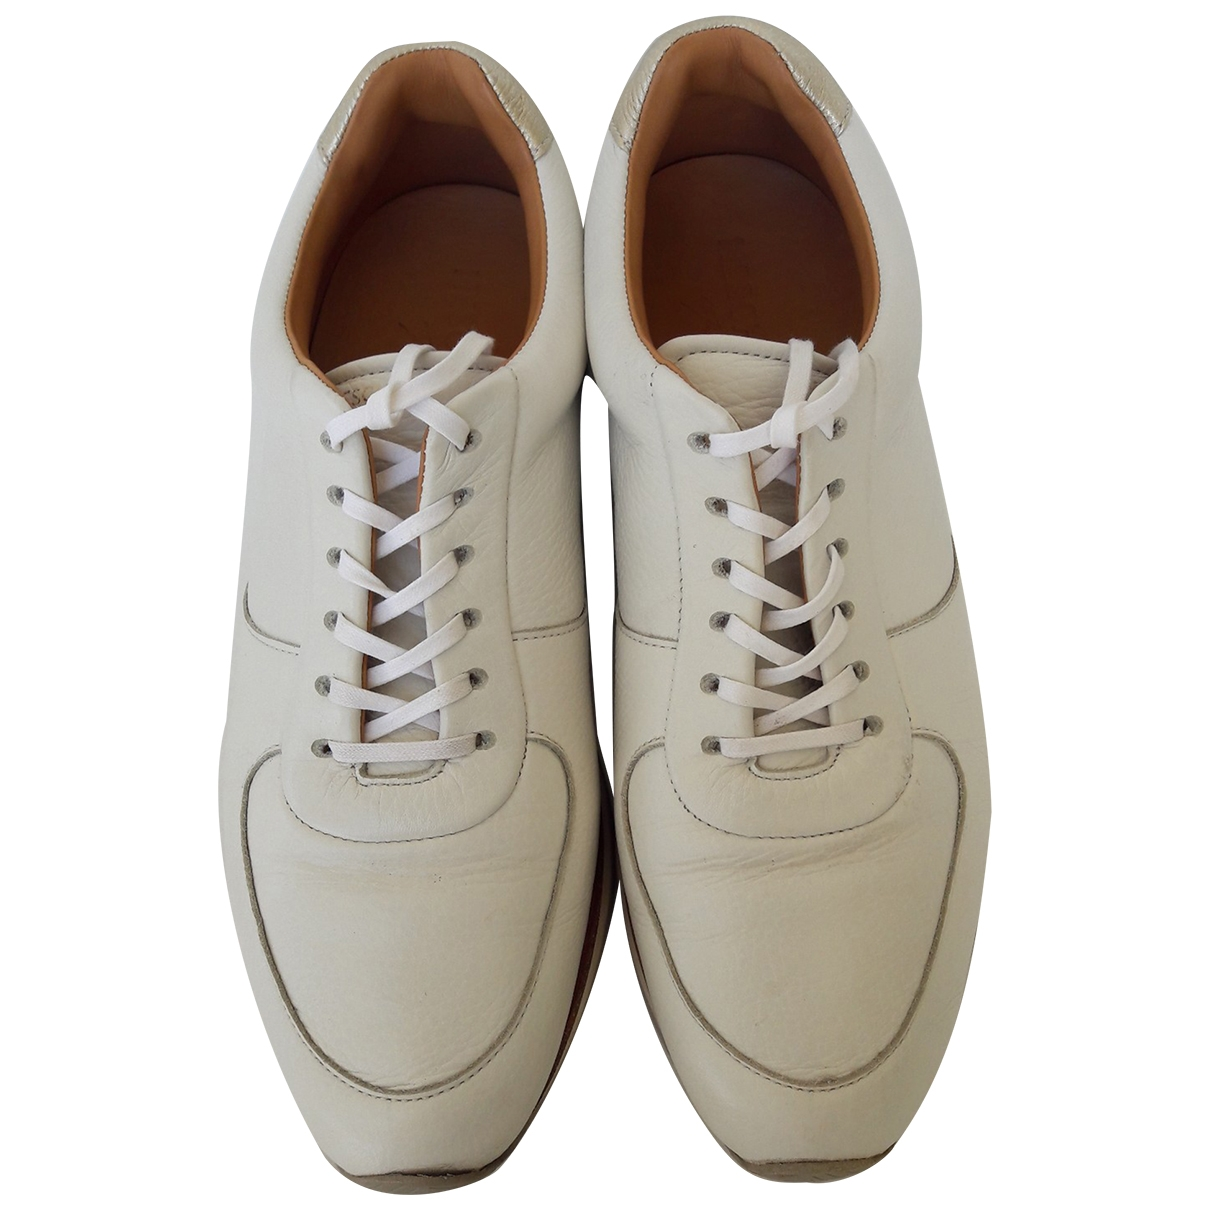 Heschung \N White Leather Trainers for Women 39.5 EU